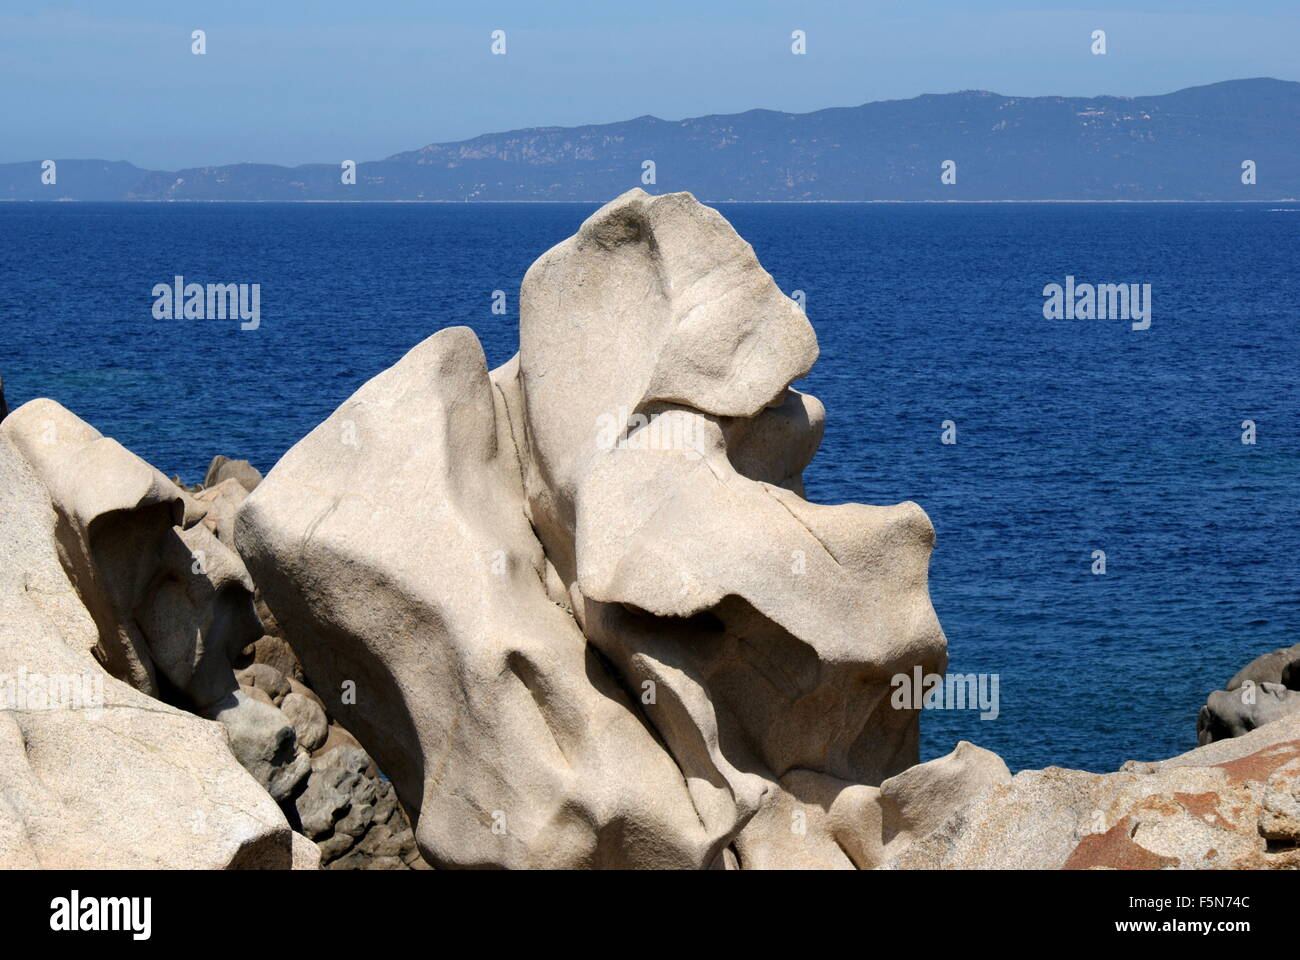 Rock formations, Campomoro, Corsica, France Stock Photo